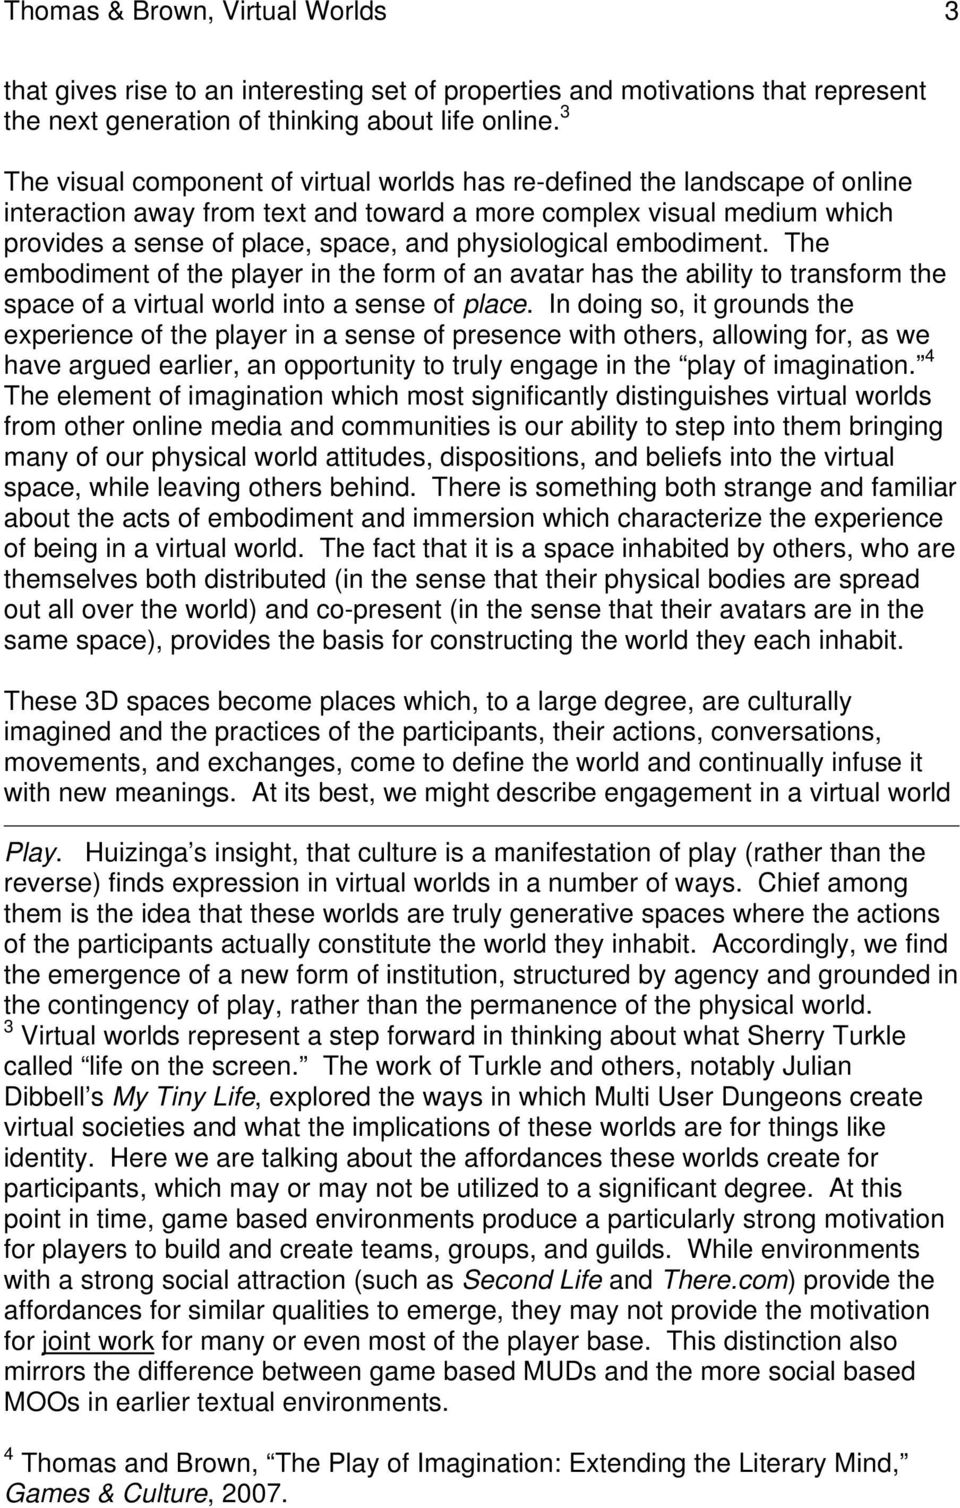 physiological embodiment. The embodiment of the player in the form of an avatar has the ability to transform the space of a virtual world into a sense of place.